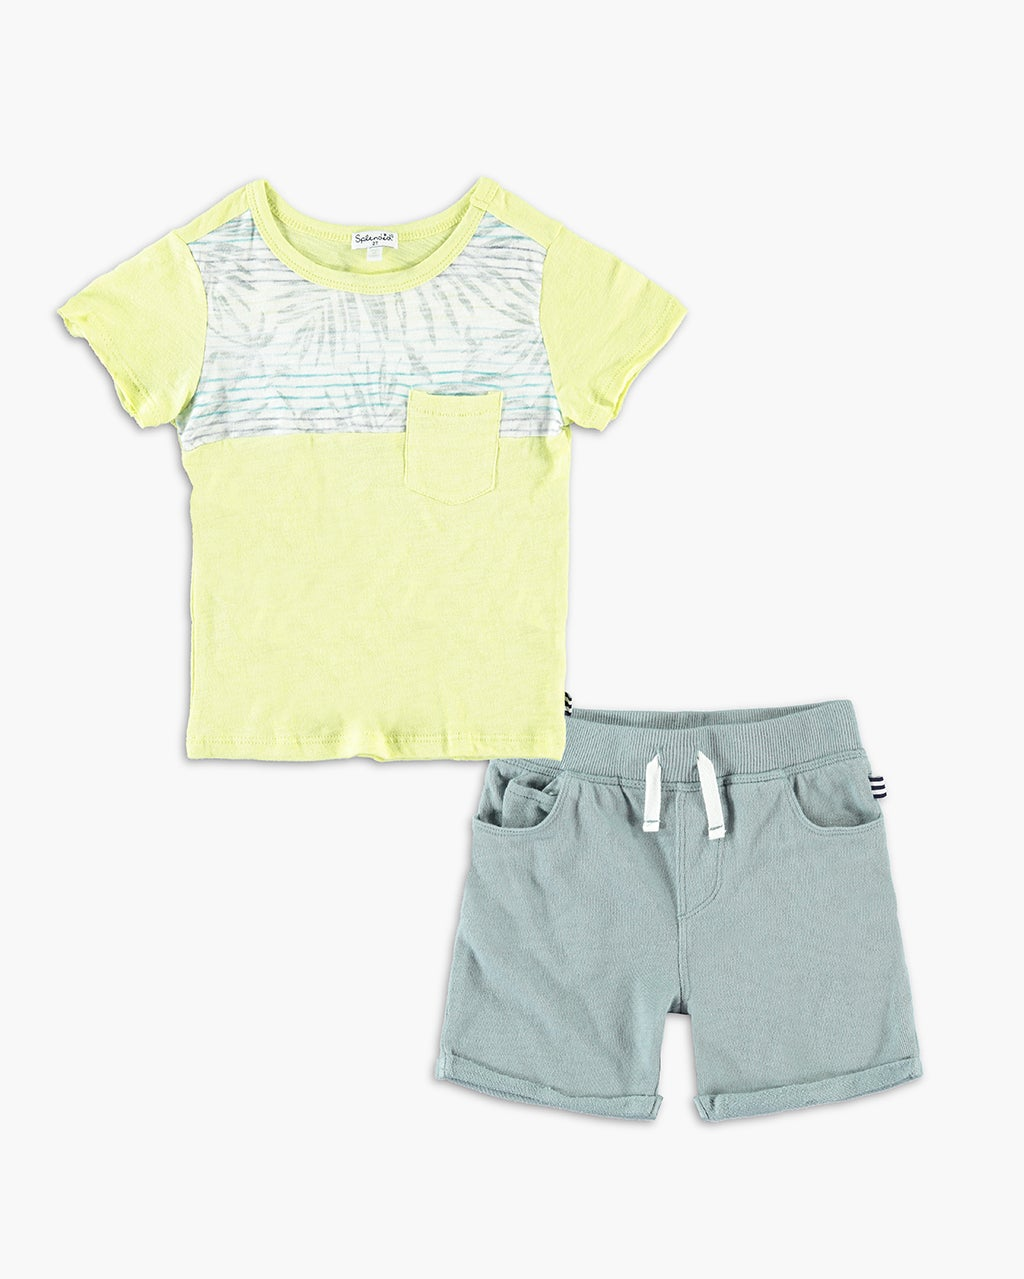 Splendid Baby Boy Printed Tee Set